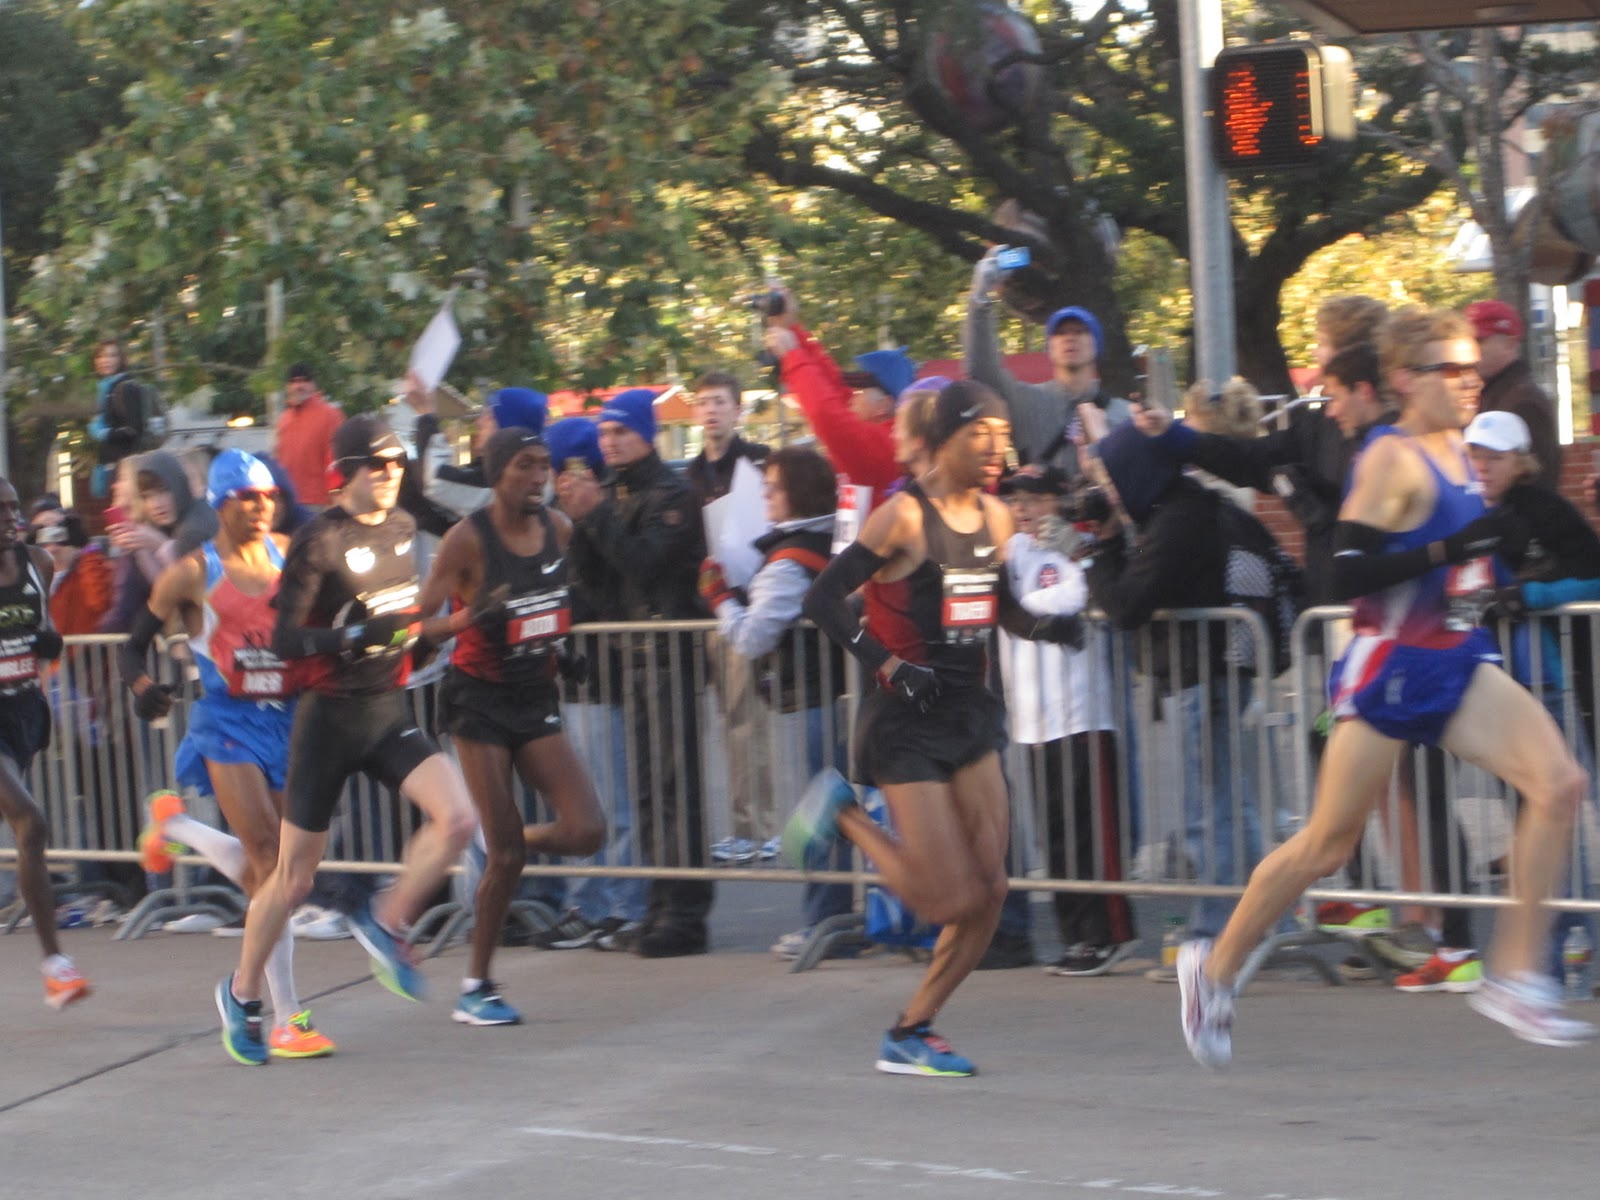 ... surges through mile two: Hall, Trafeh, Abdi, Ritz, Meb and Chirlee